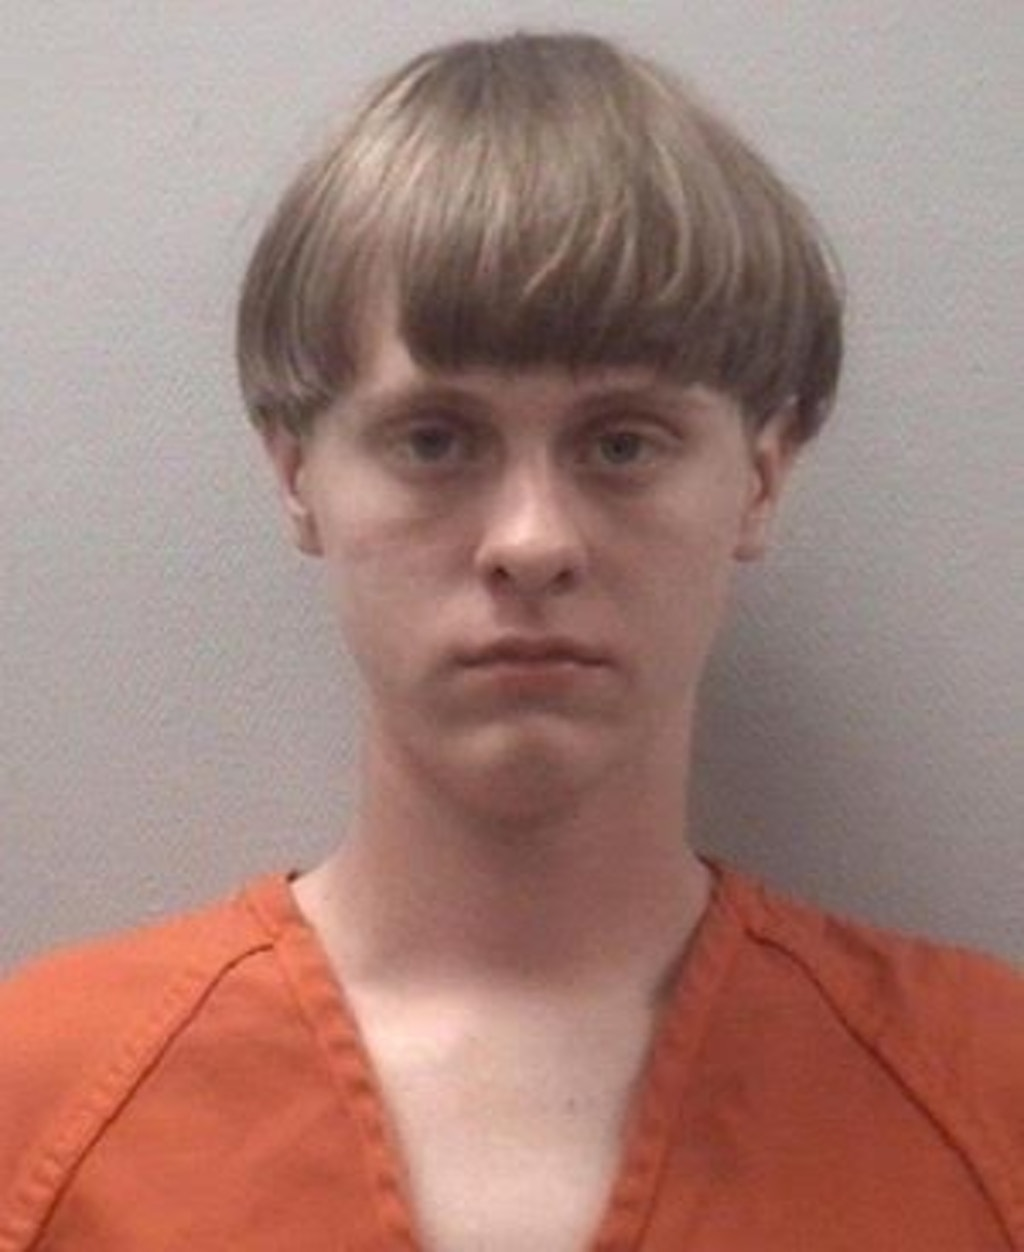 Judge Grants Dylann Roof's Request to Represent Himself in Federal Death Penalty Trial